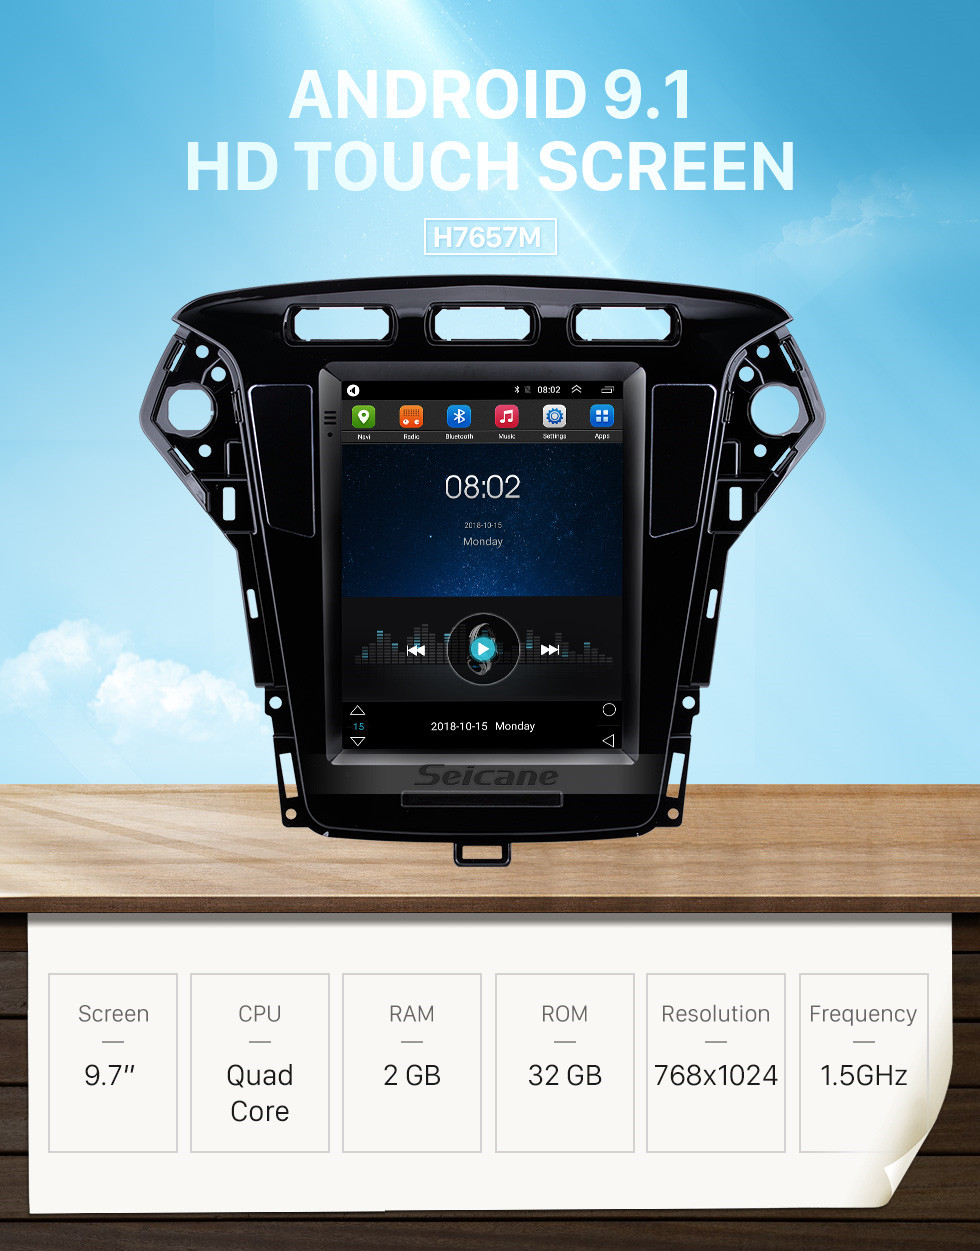 Seicane Android 9.1 9.7 inch for 2011 2012 2013 Ford Mondeo mk4 Radio with GPS Navigation HD Touchscreen Bluetooth support Carplay DVR OBD2